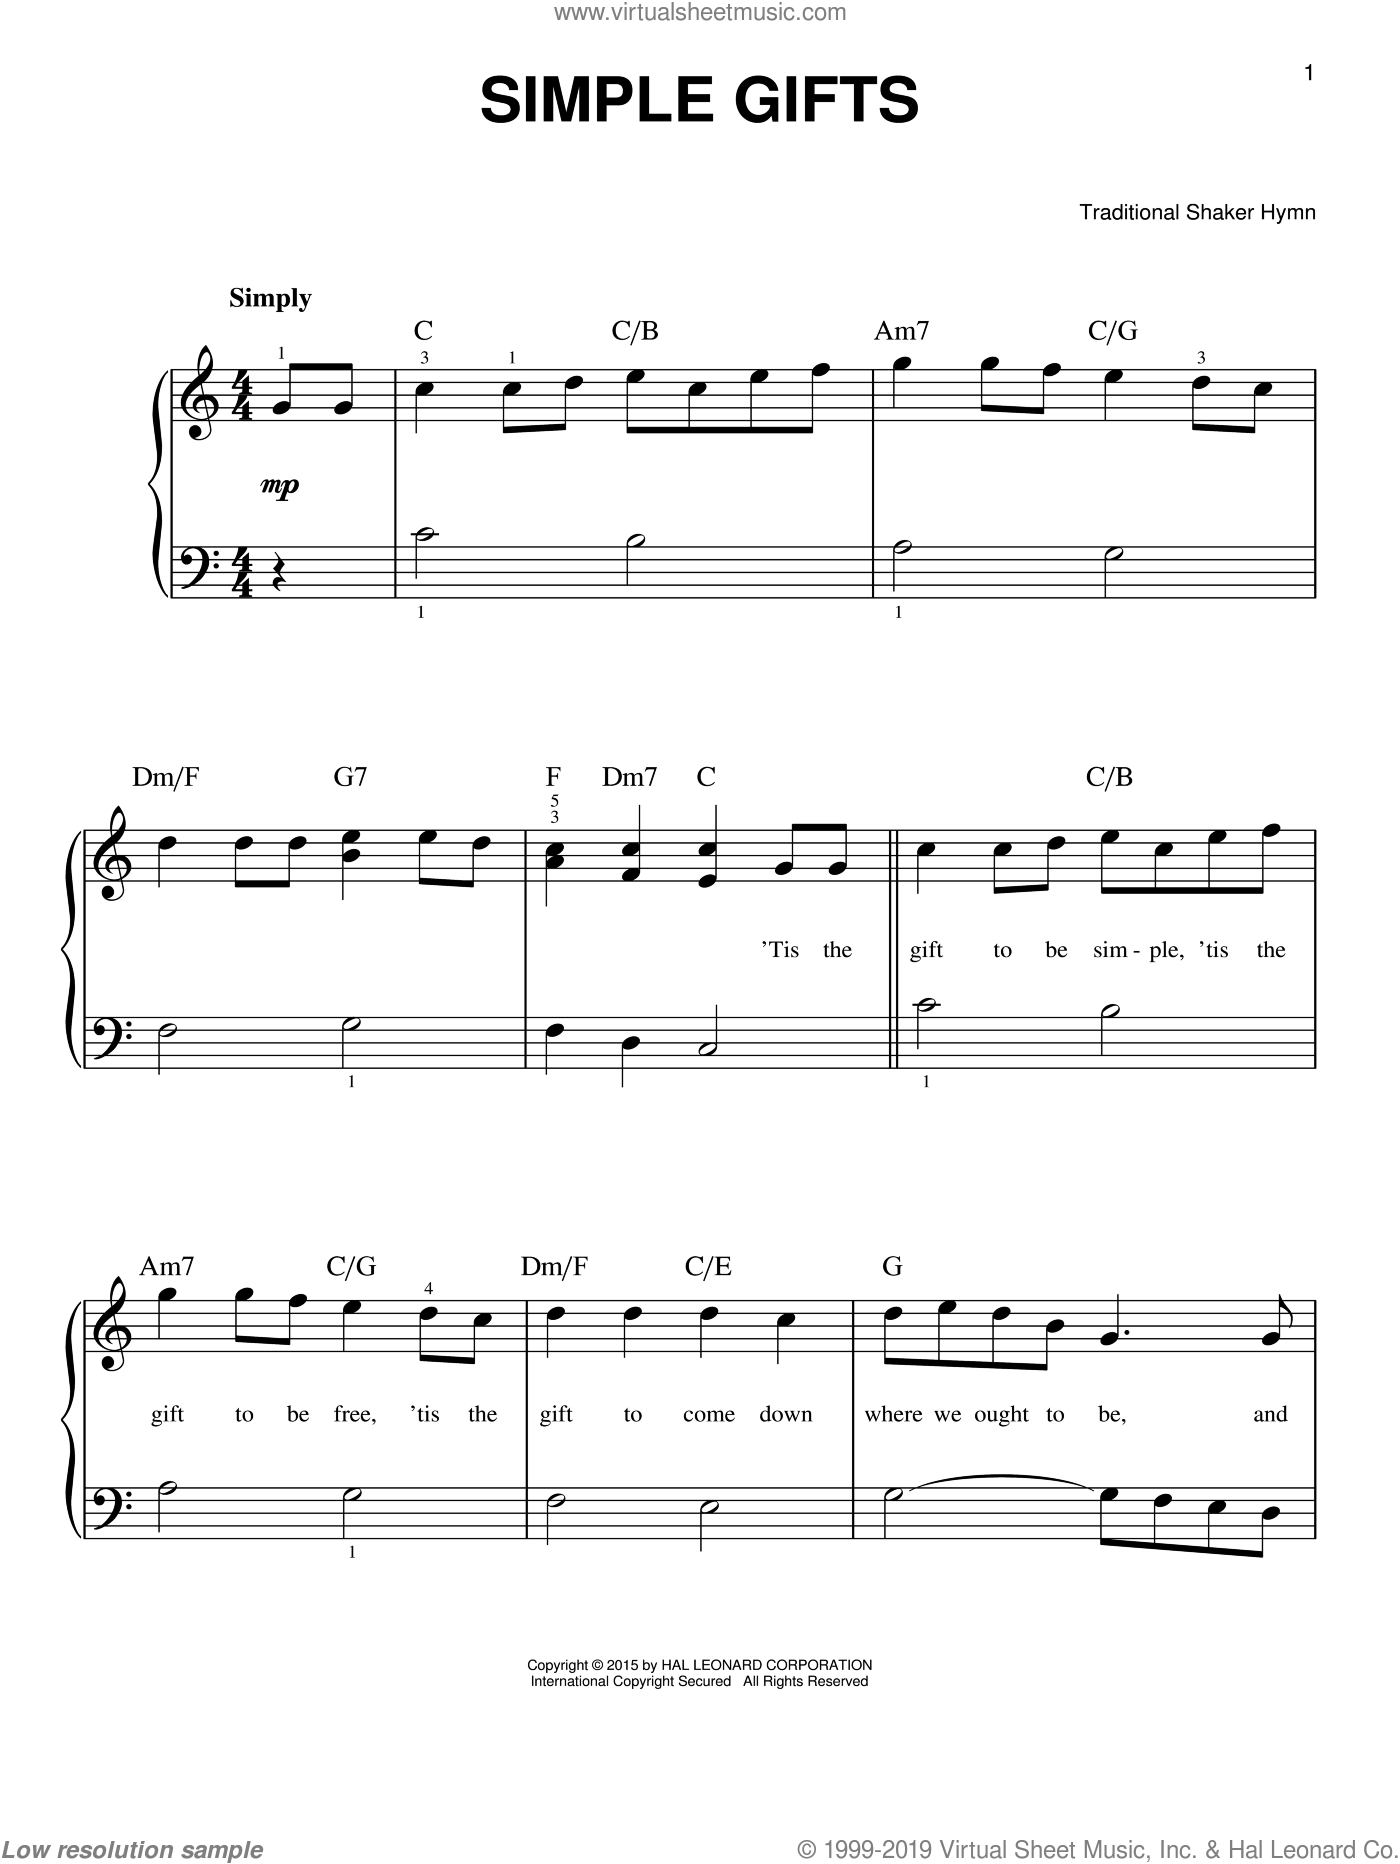 Simple Gifts sheet music for piano solo, beginner skill level